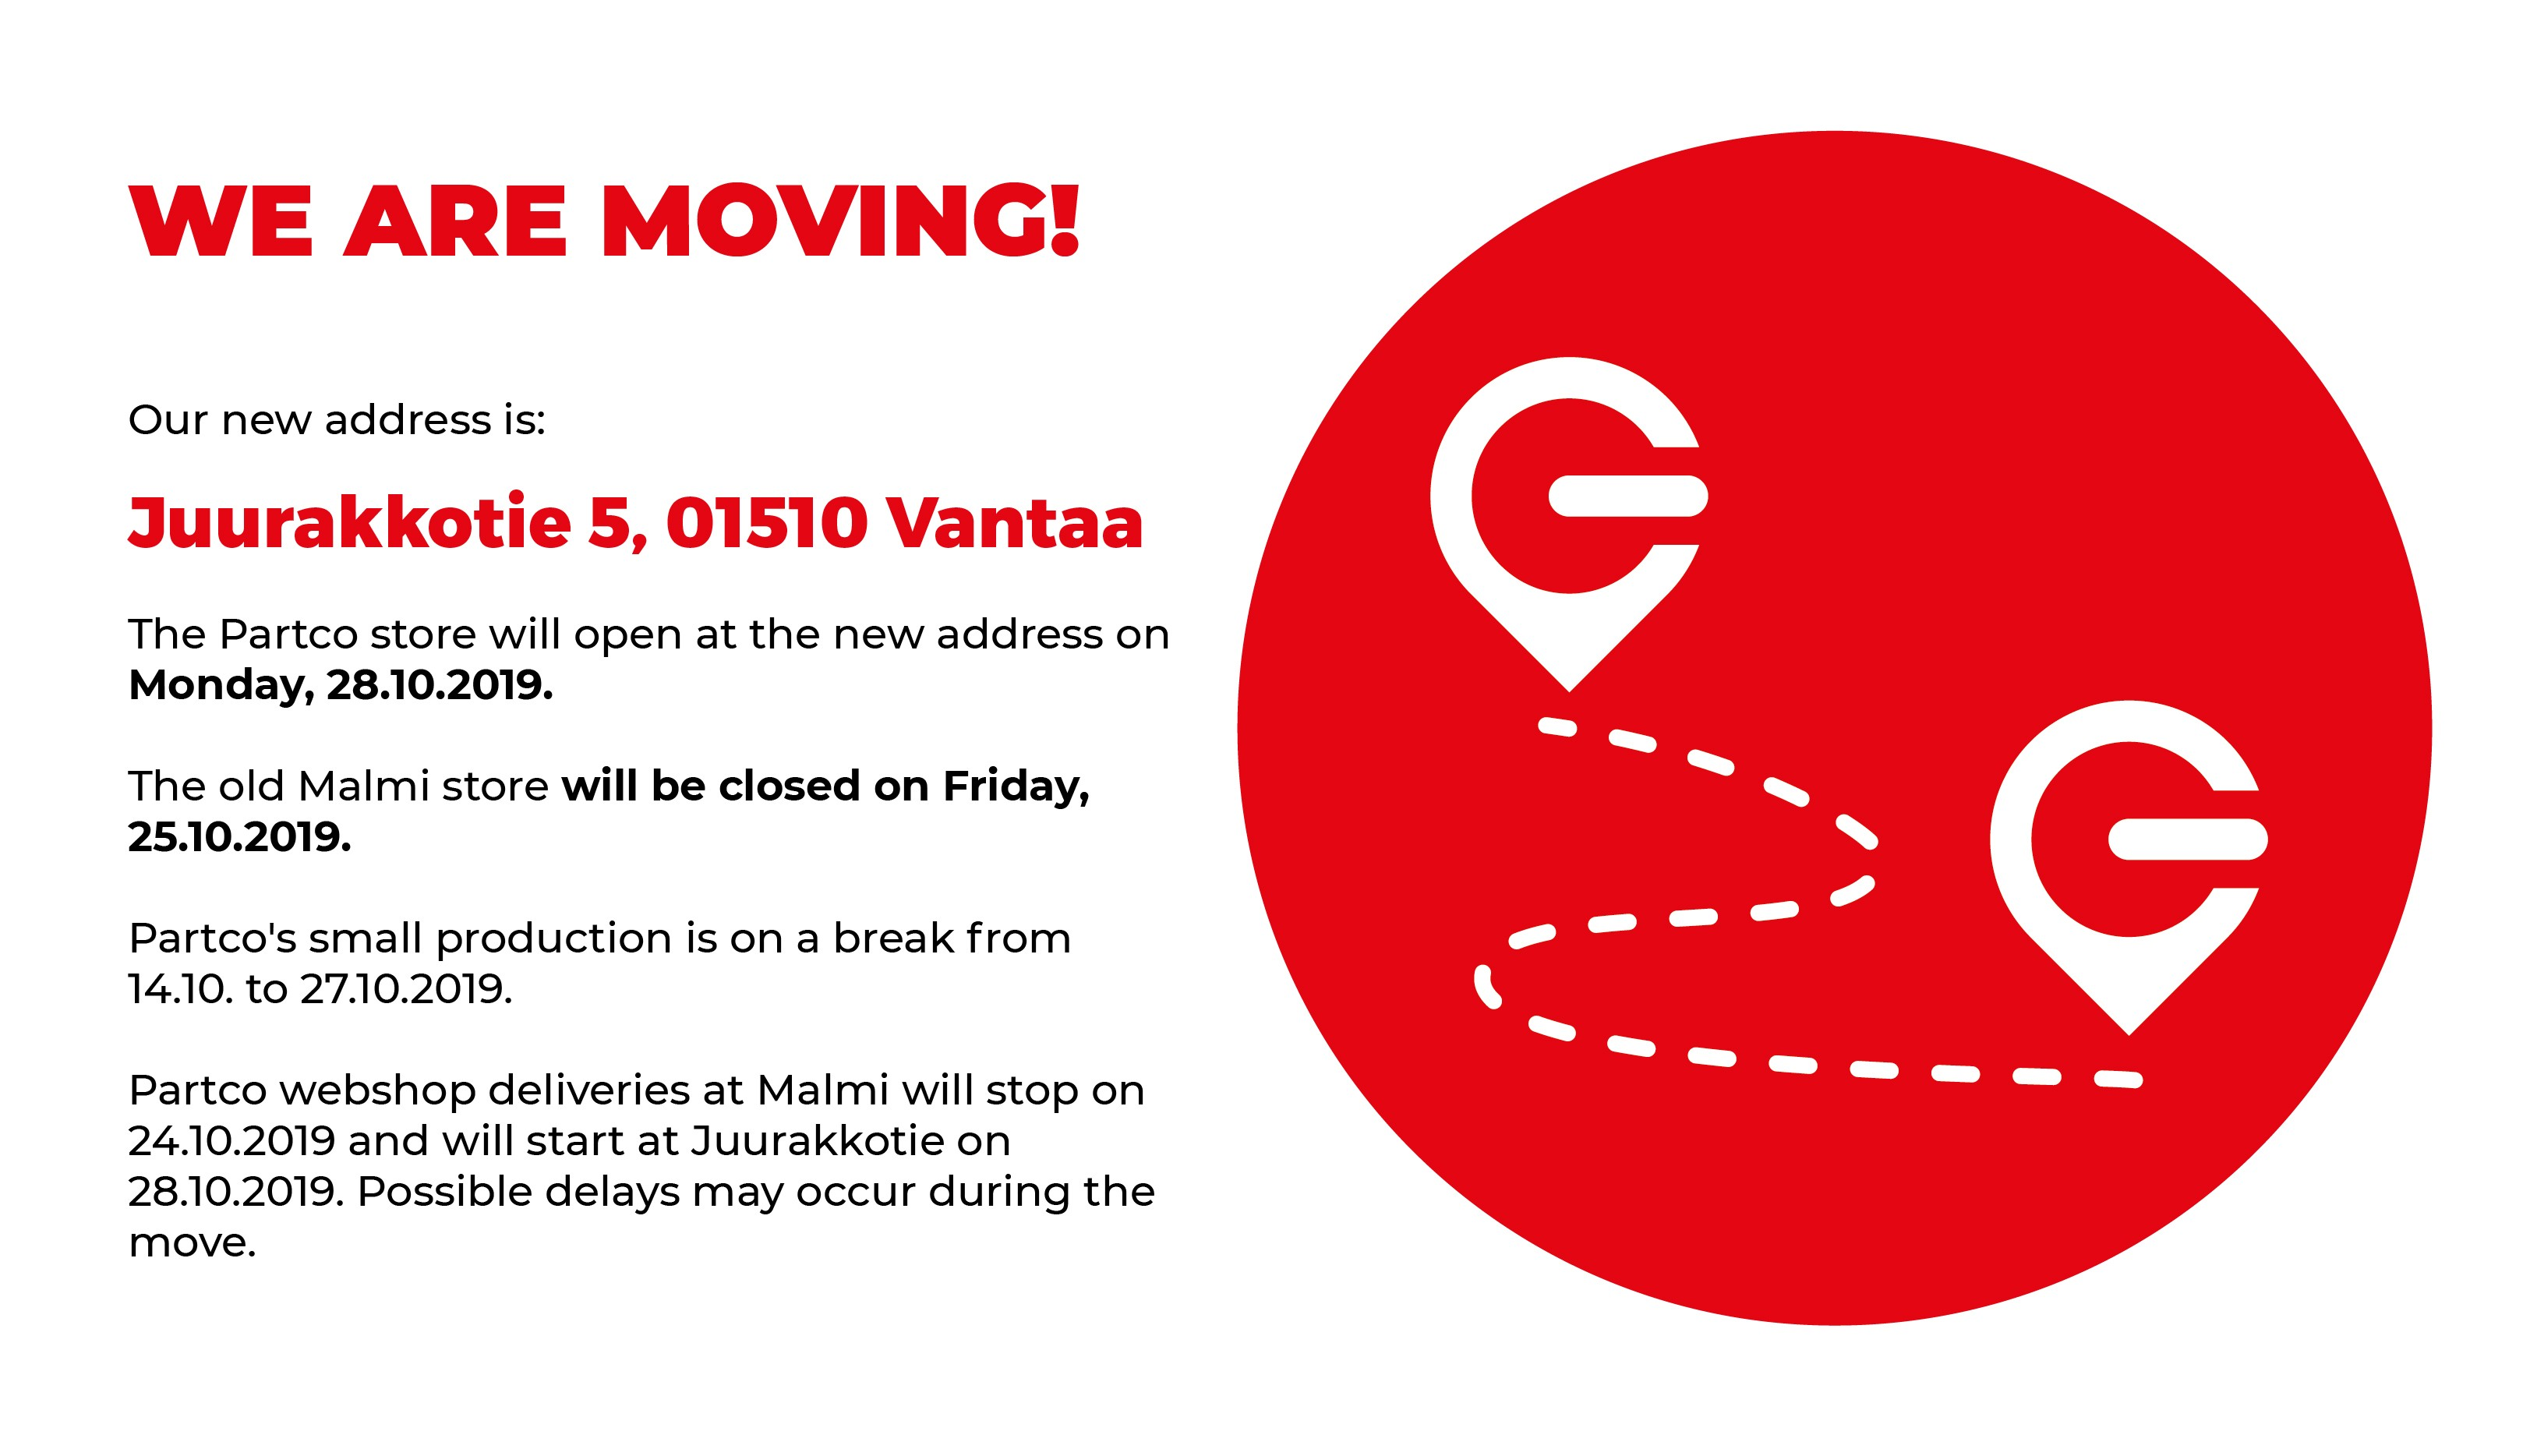 We are moving 28.10.